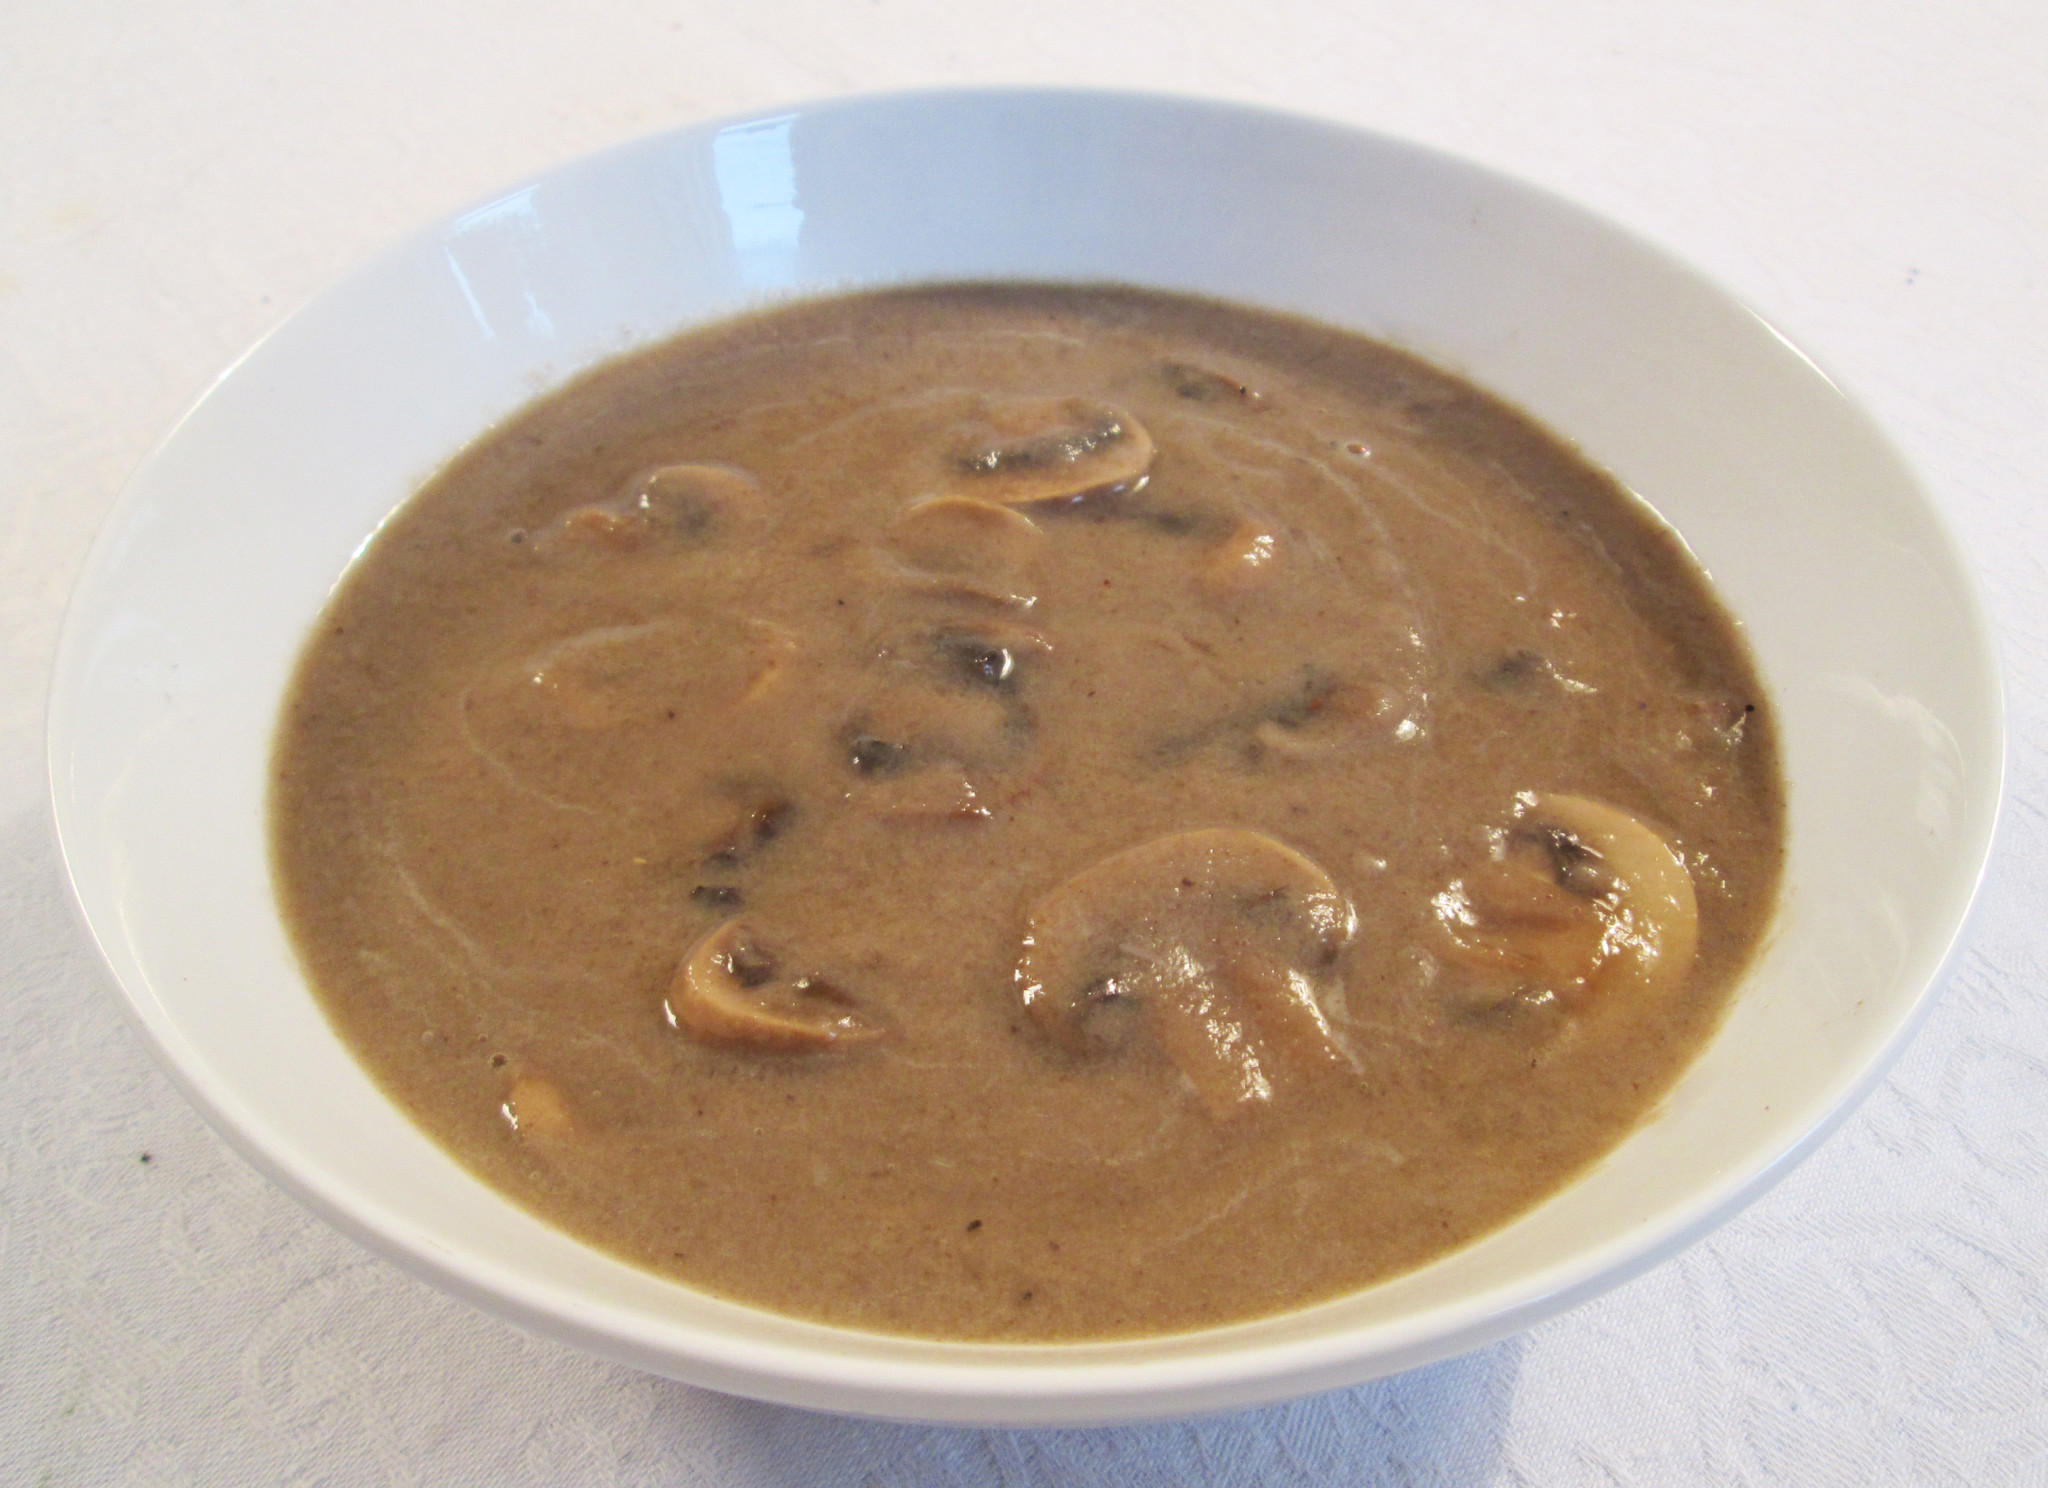 Vegan Cream of Mushroom Soup Recipe - Robins KeyRobins Key